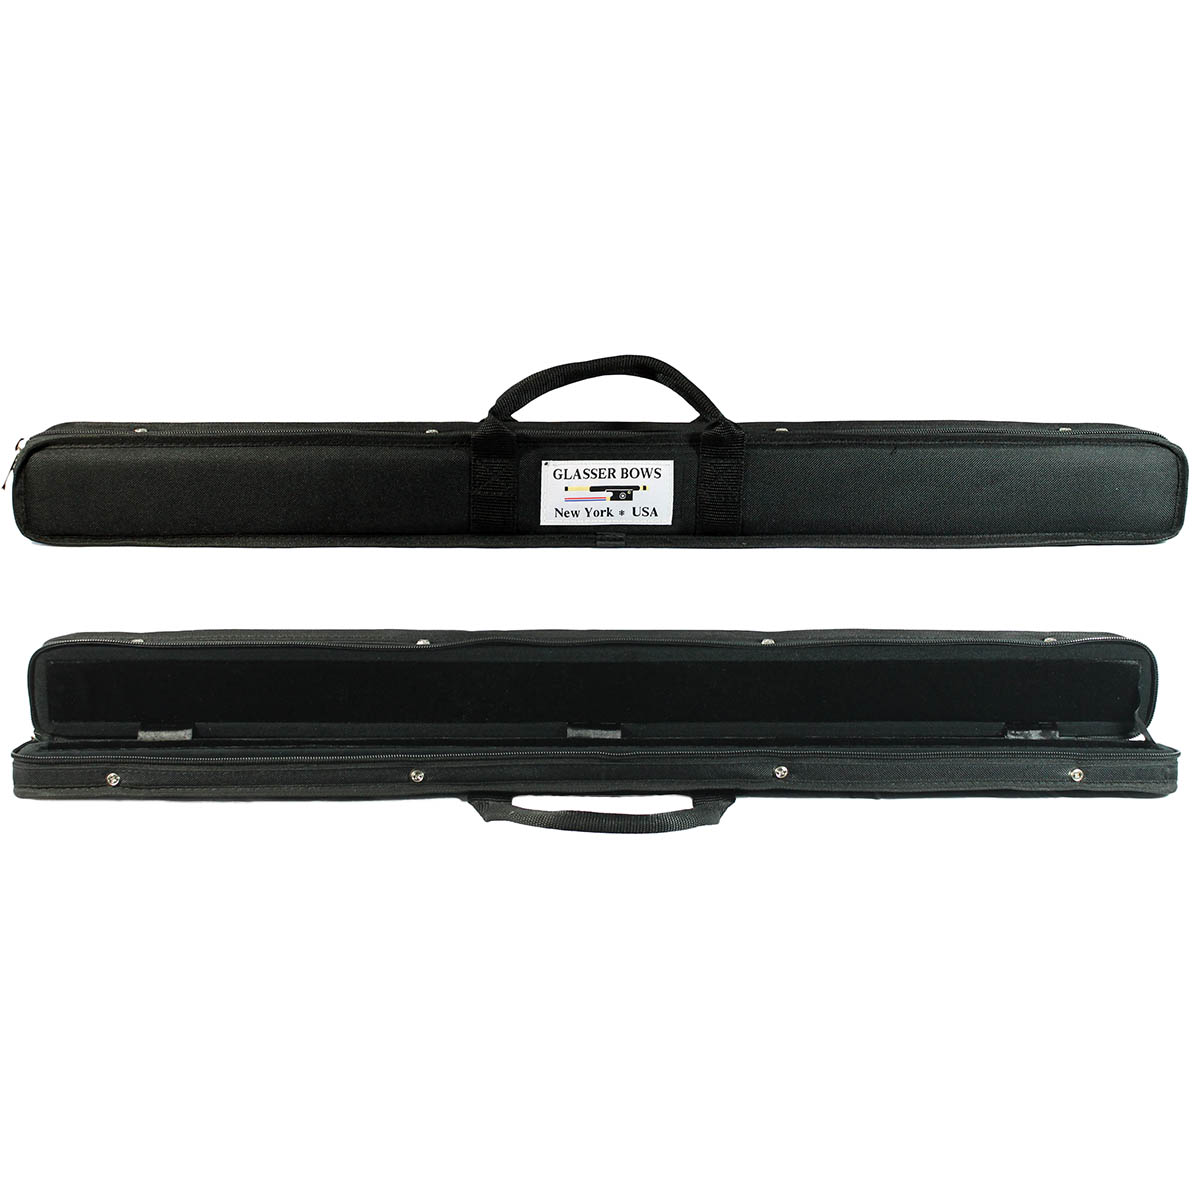 Glasser Bow Case